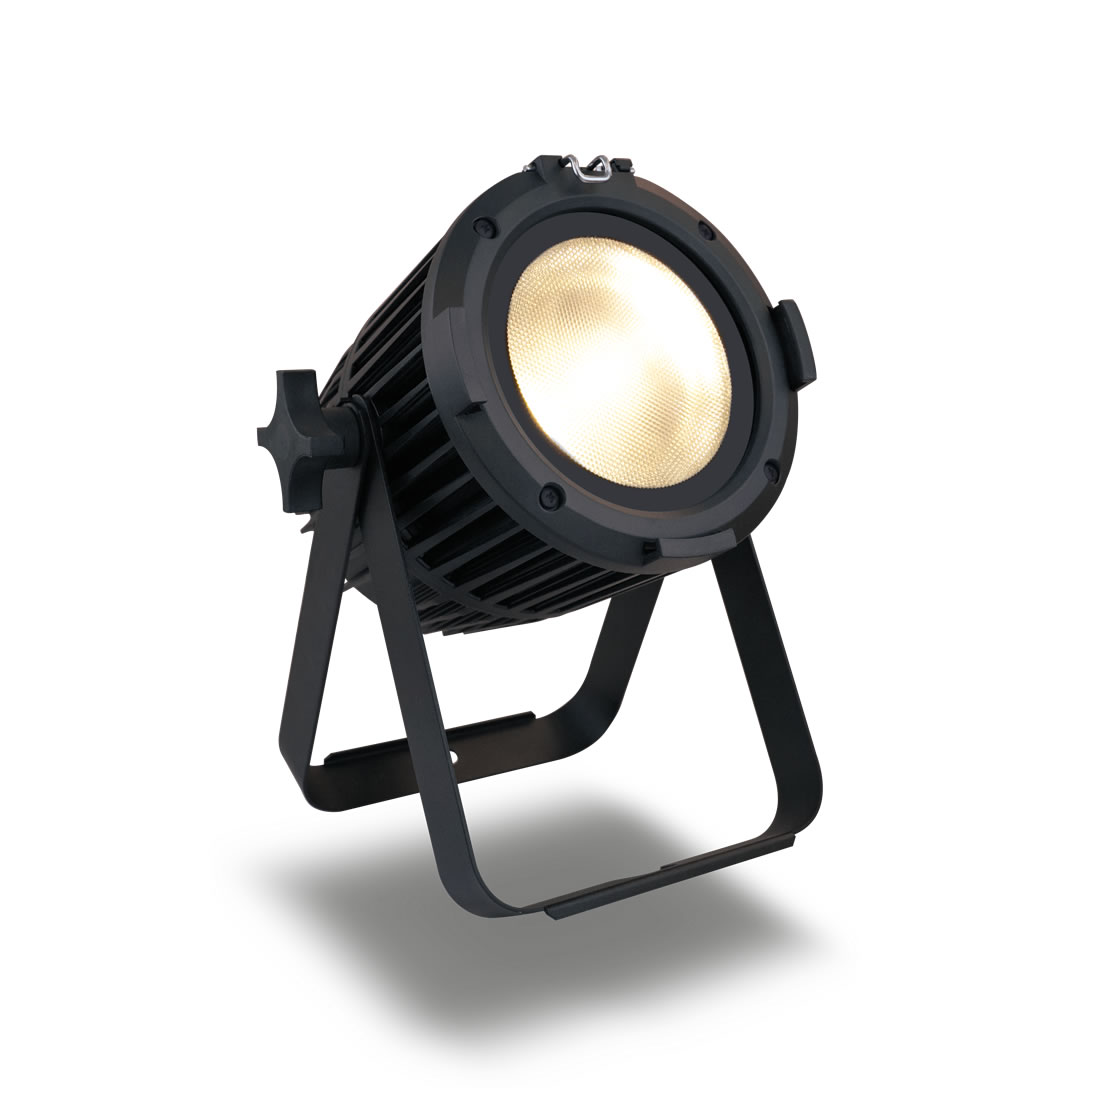 lighting-equipment-for-rent-led-fixtures-led-moving-light-fixtures-chroma-q-color-one-100-led-outdoor-par.jpg